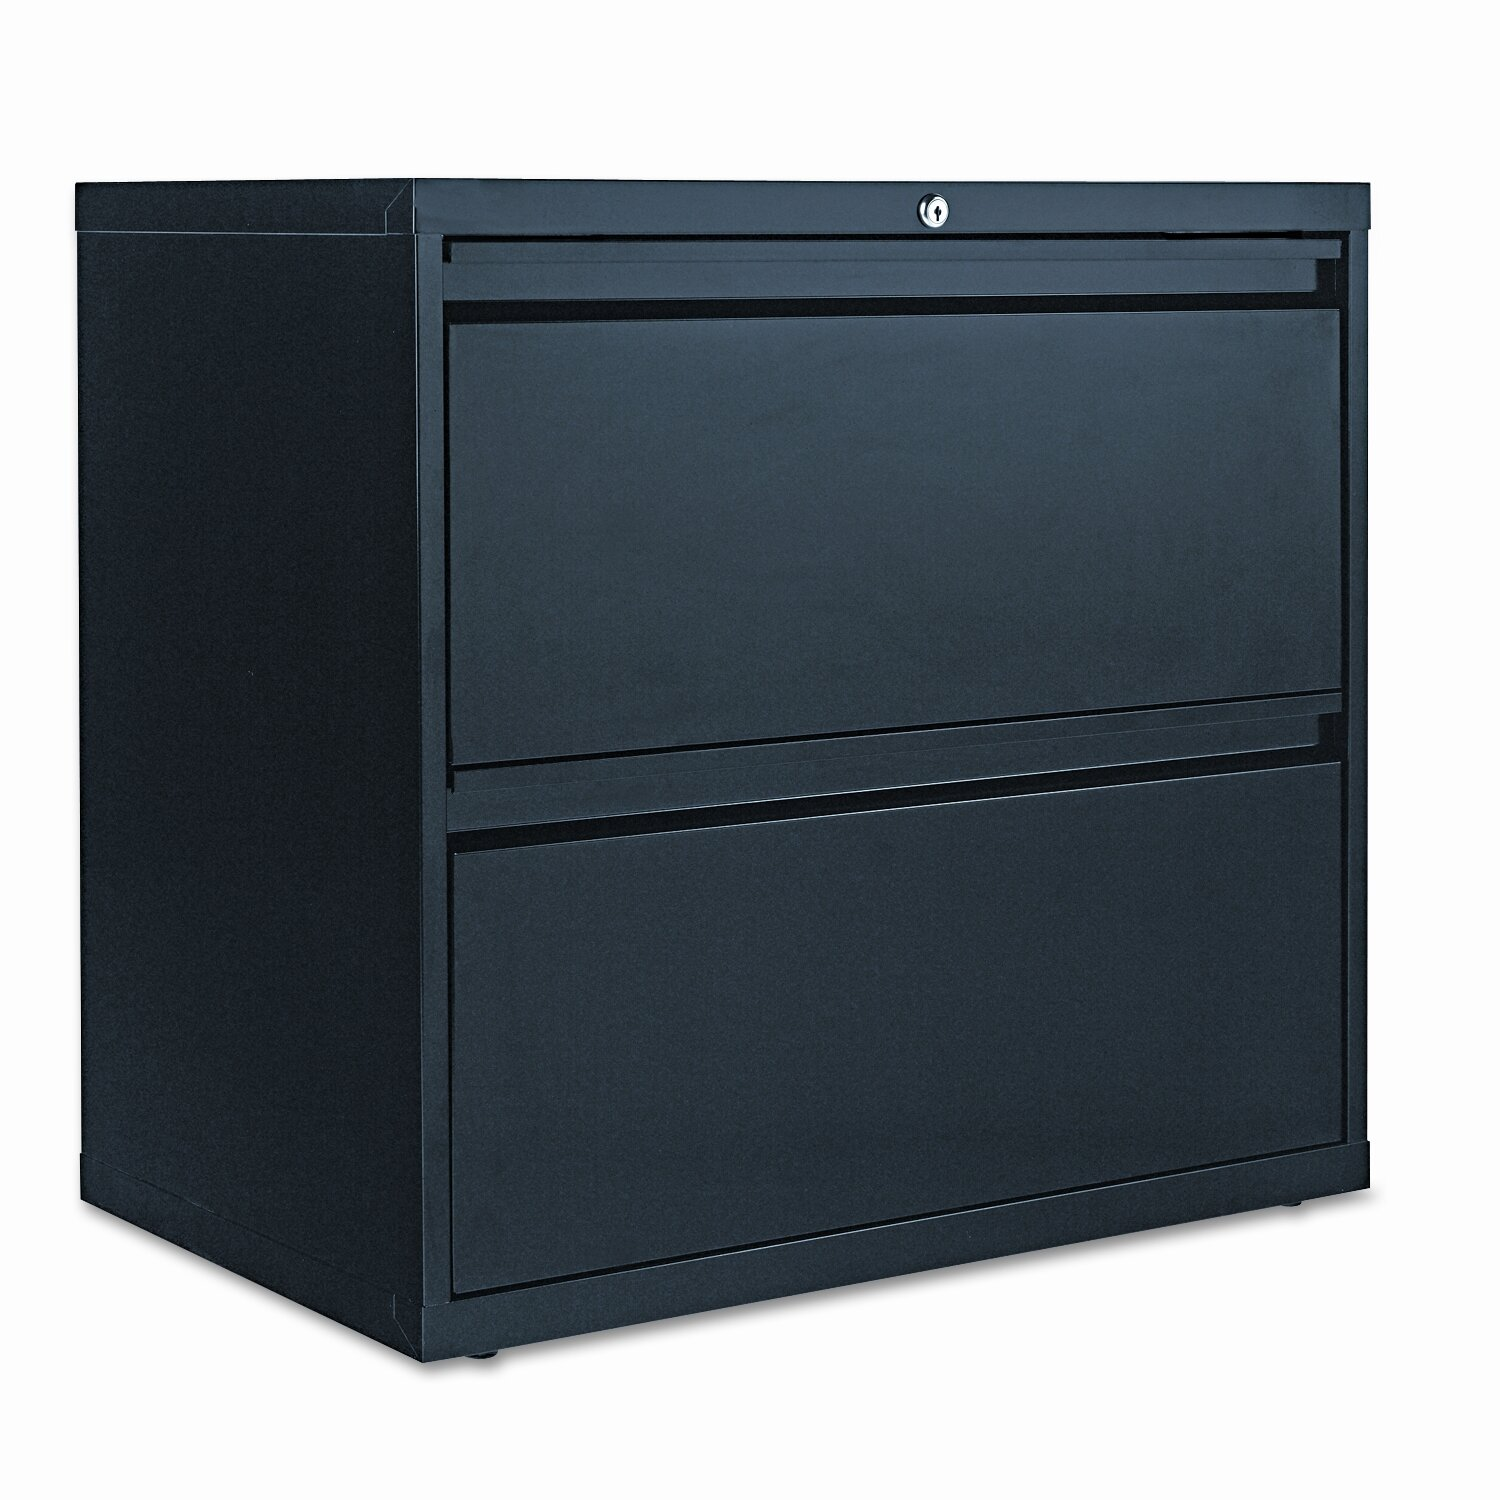 Horizontal Filing Cabinet Lateral Filing Cabinets Youll Love Wayfair